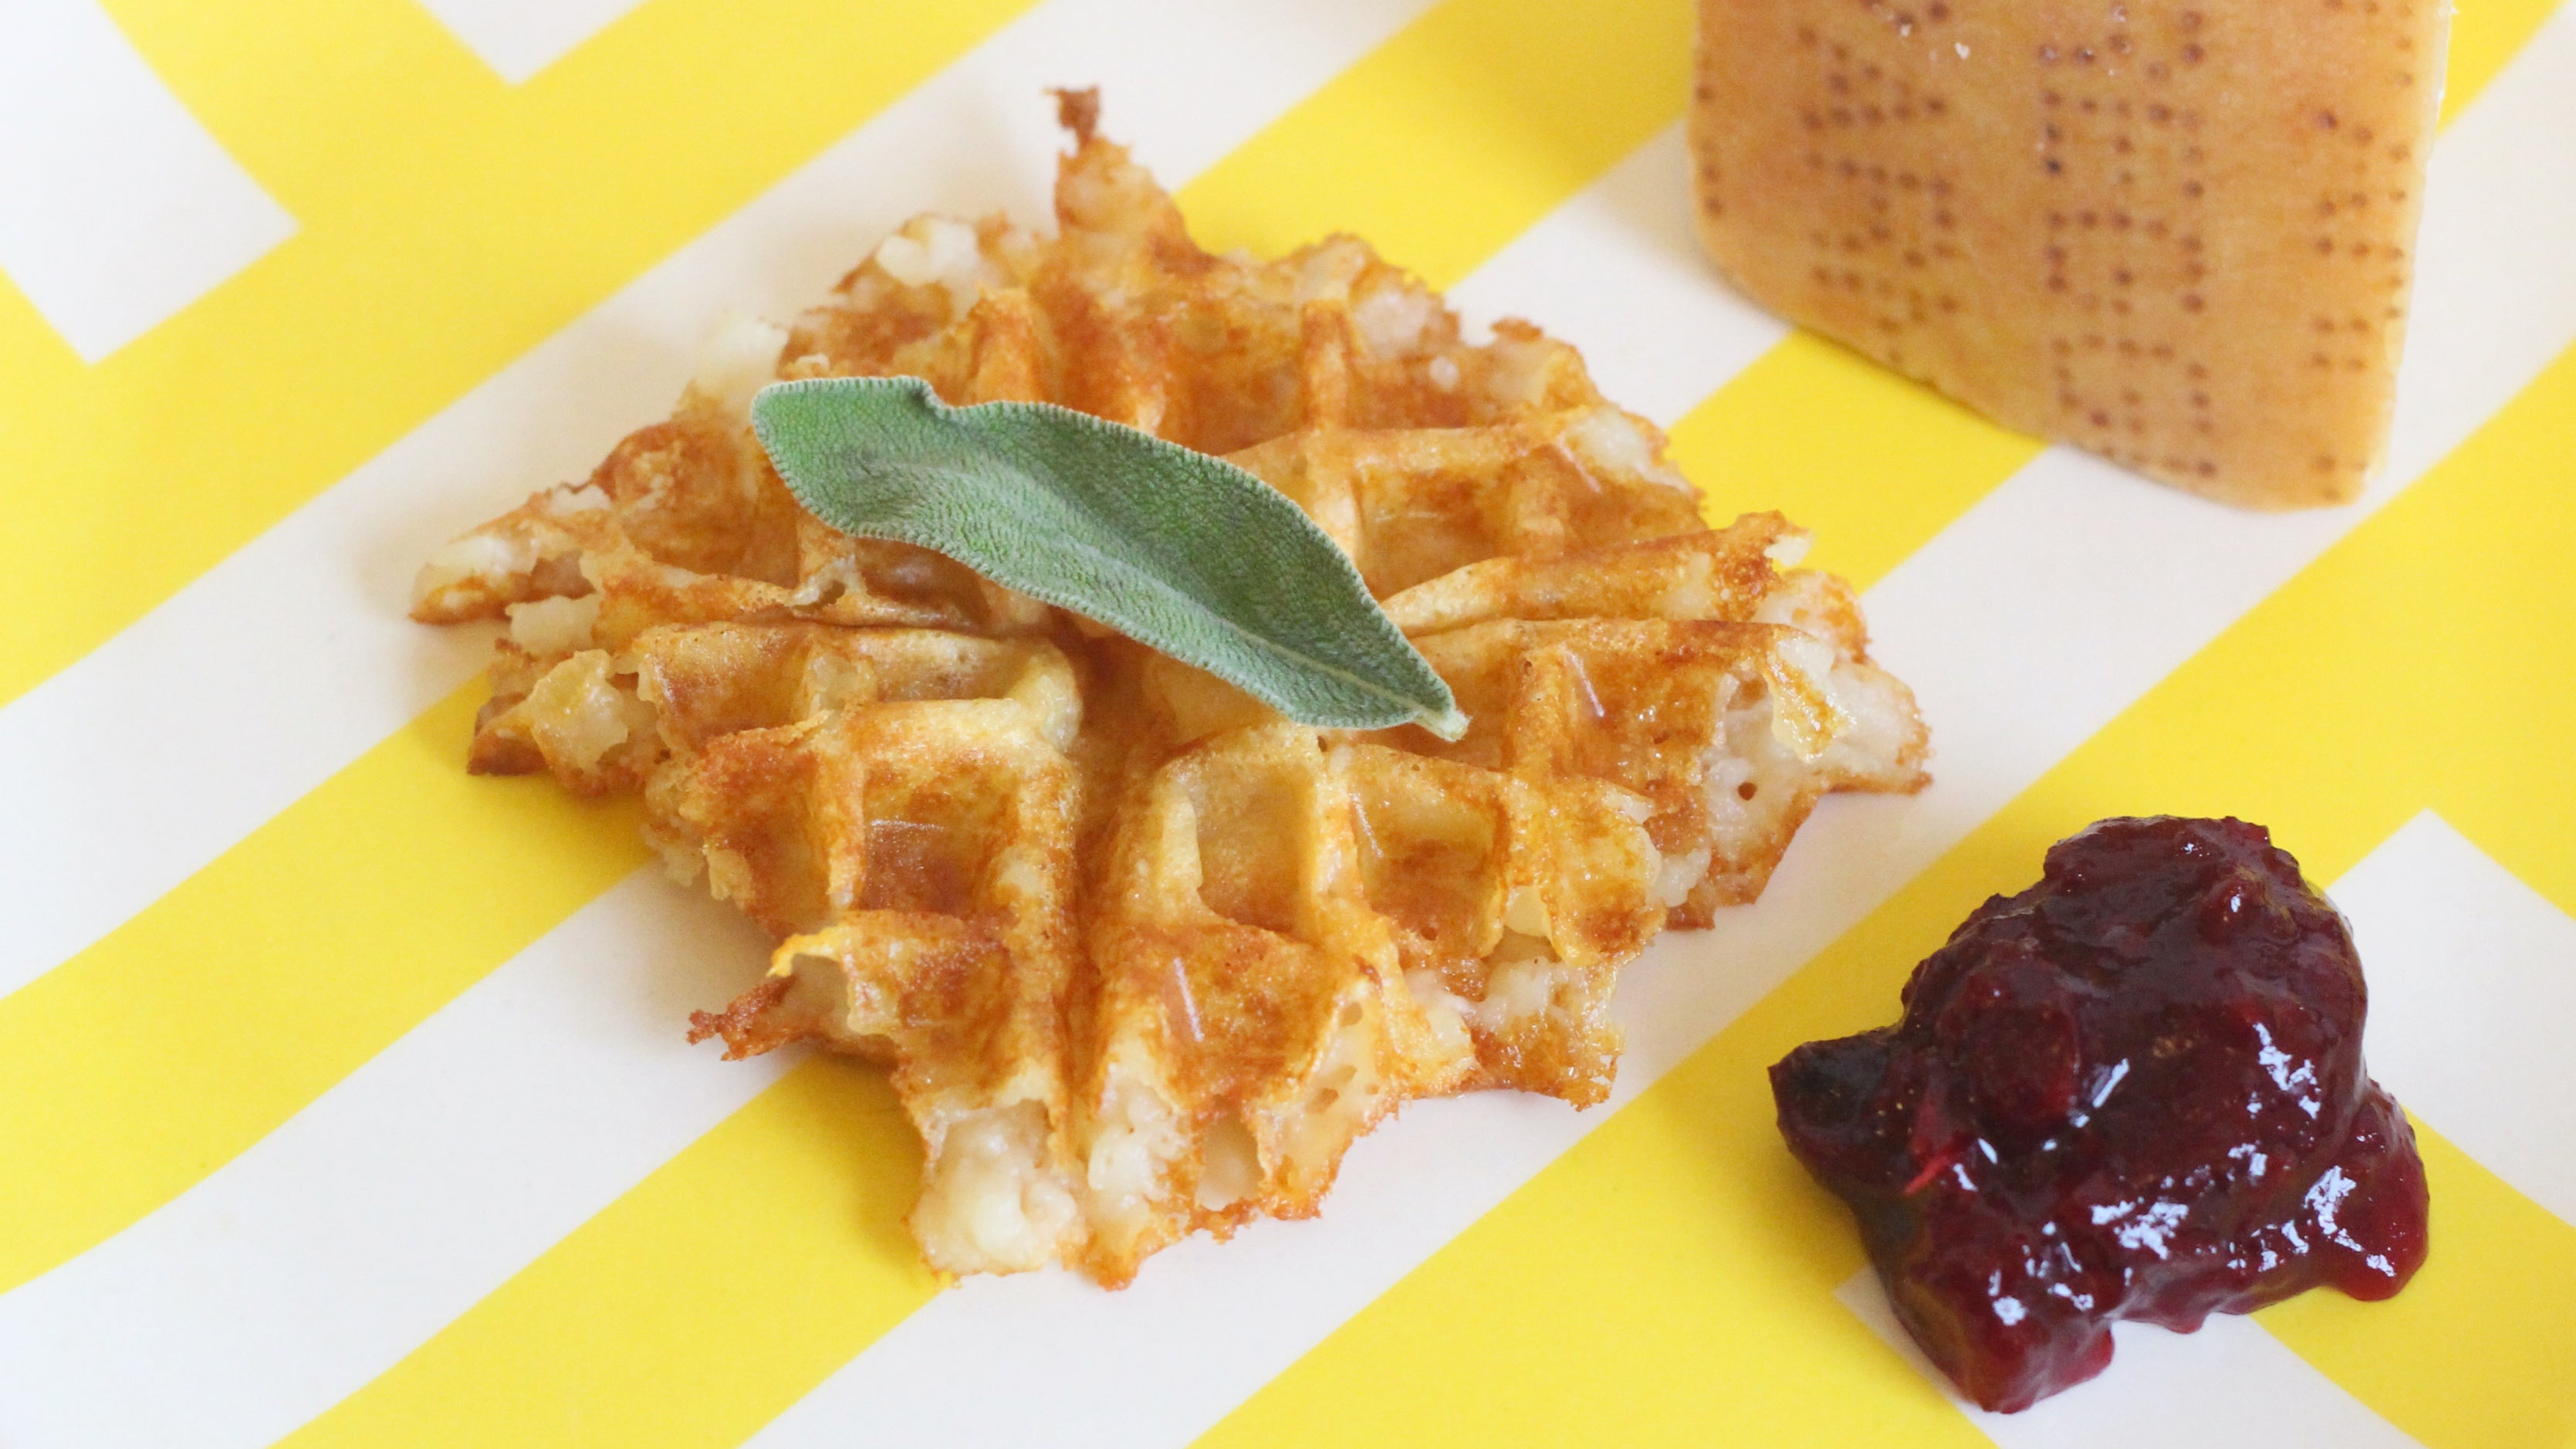 Make These Parm-Crusted Waffles With Leftover Mashed Potatoes